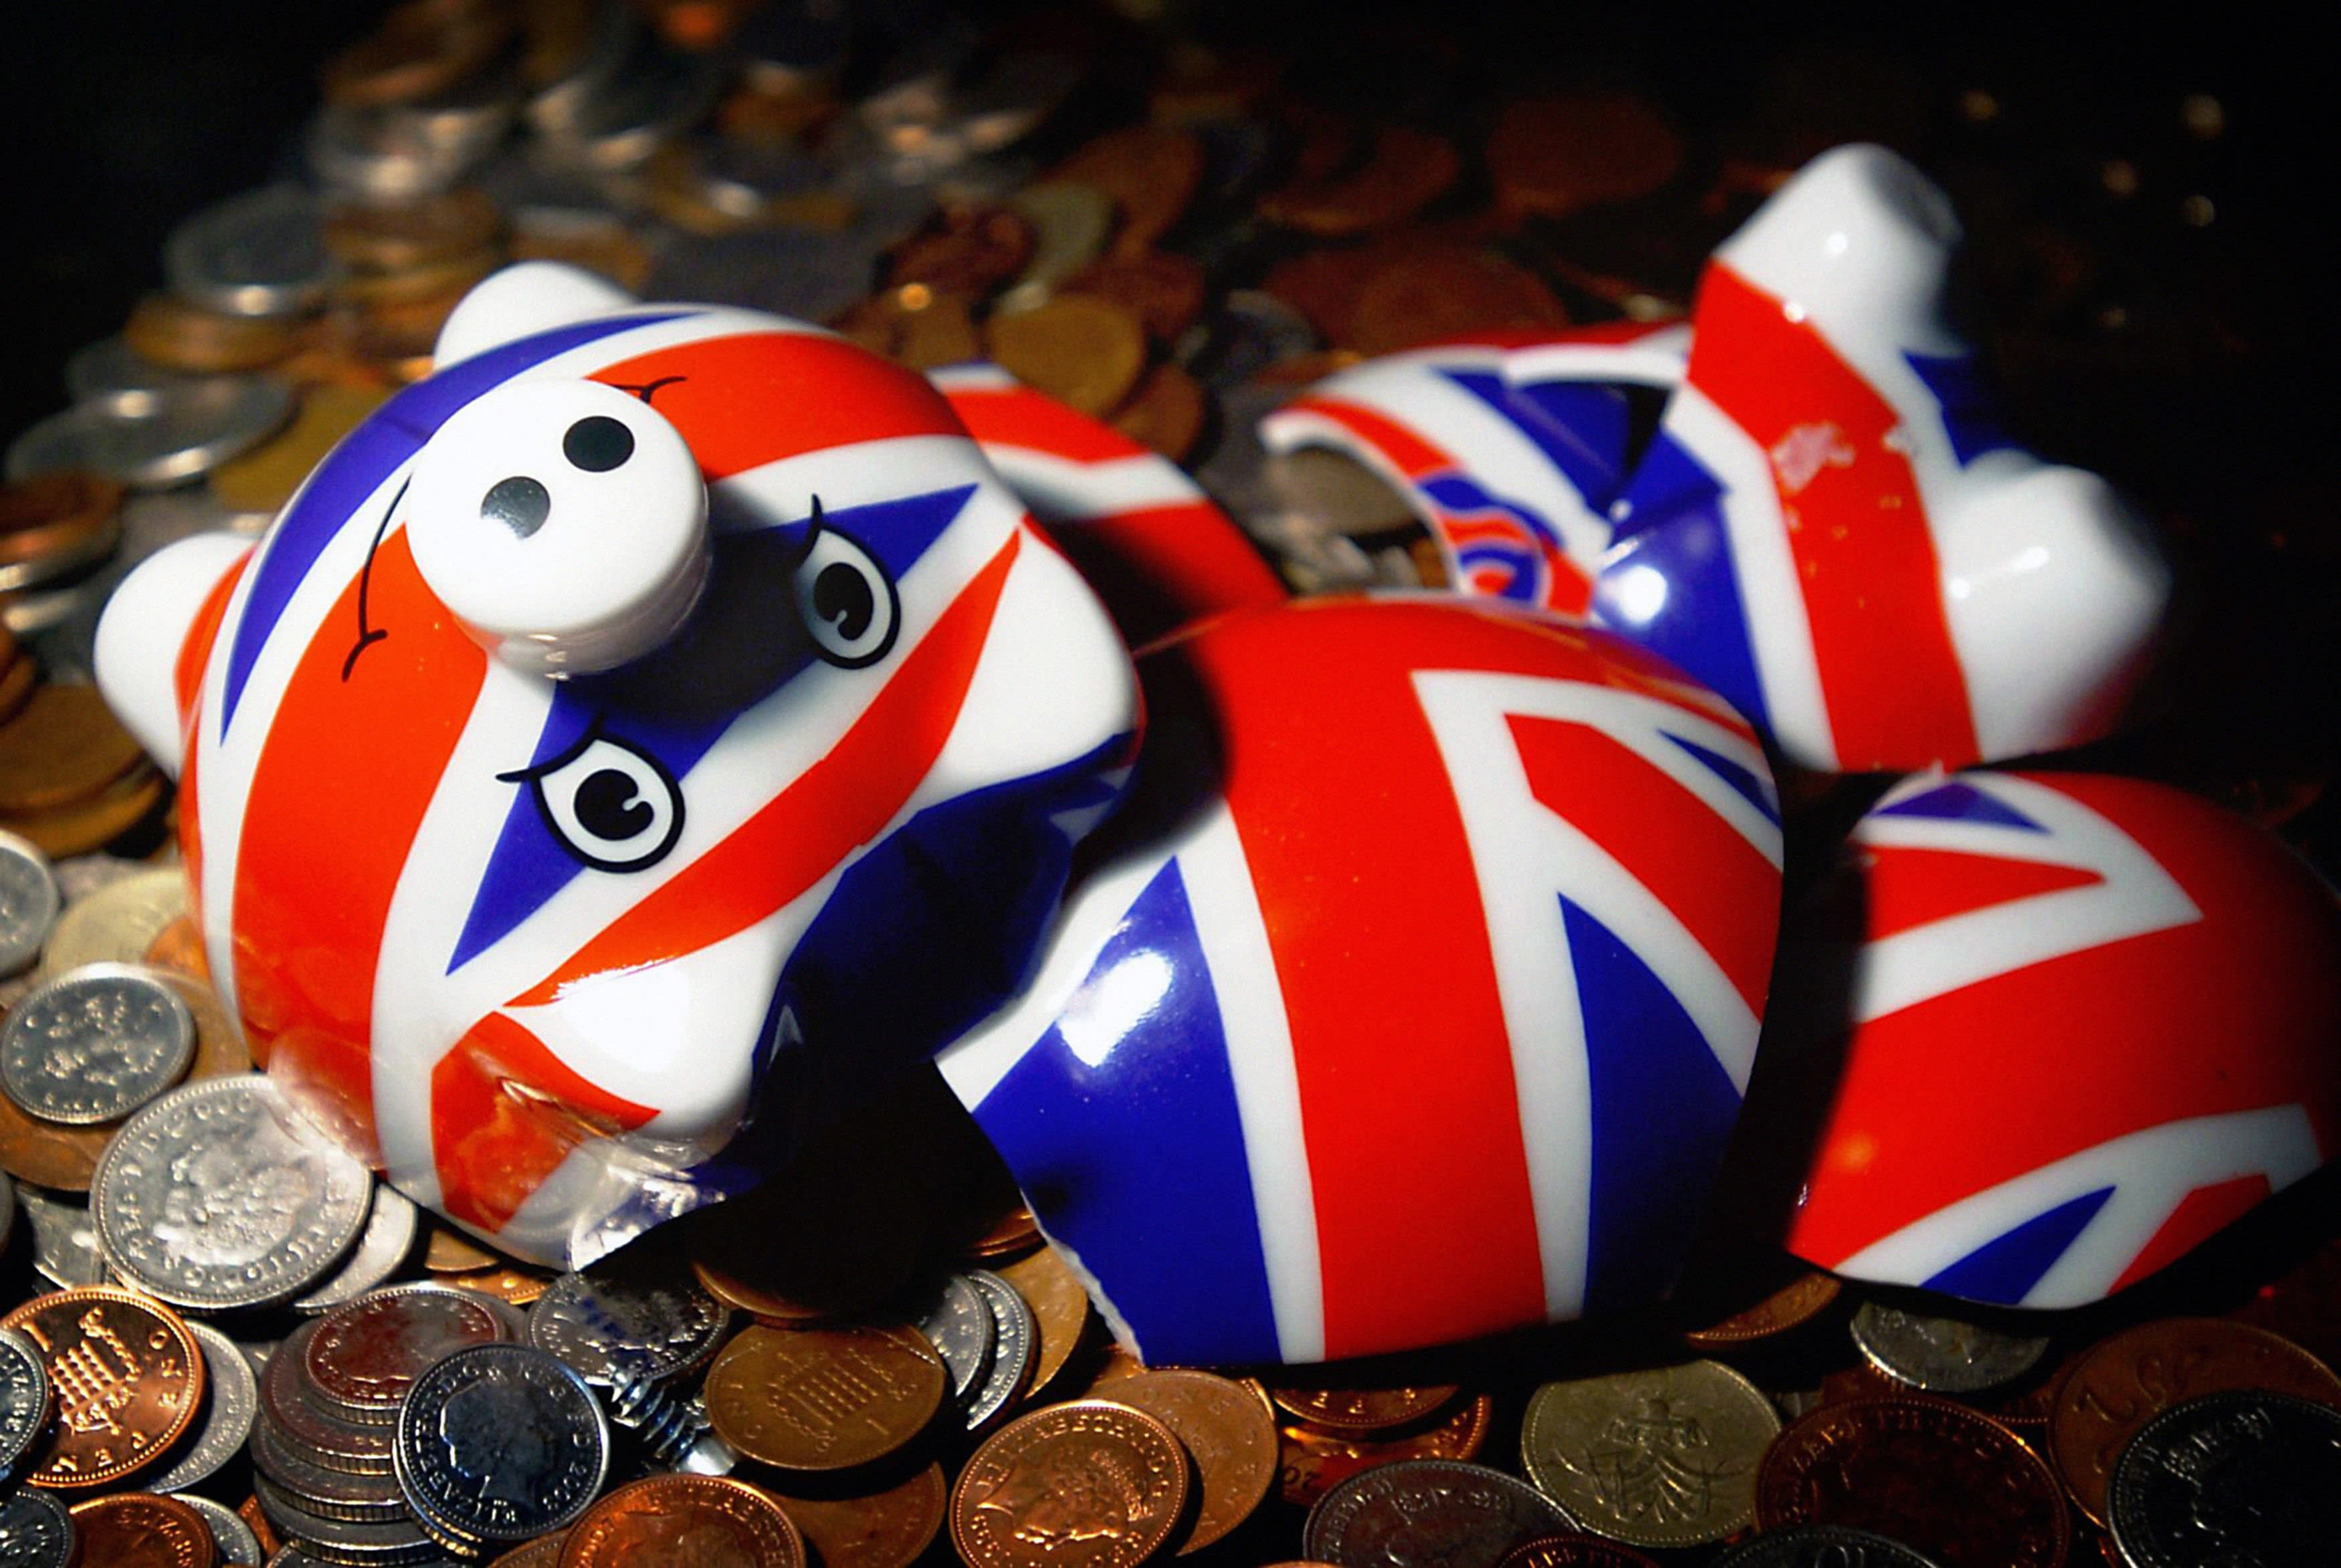 Savers lose half their pension value when transferring